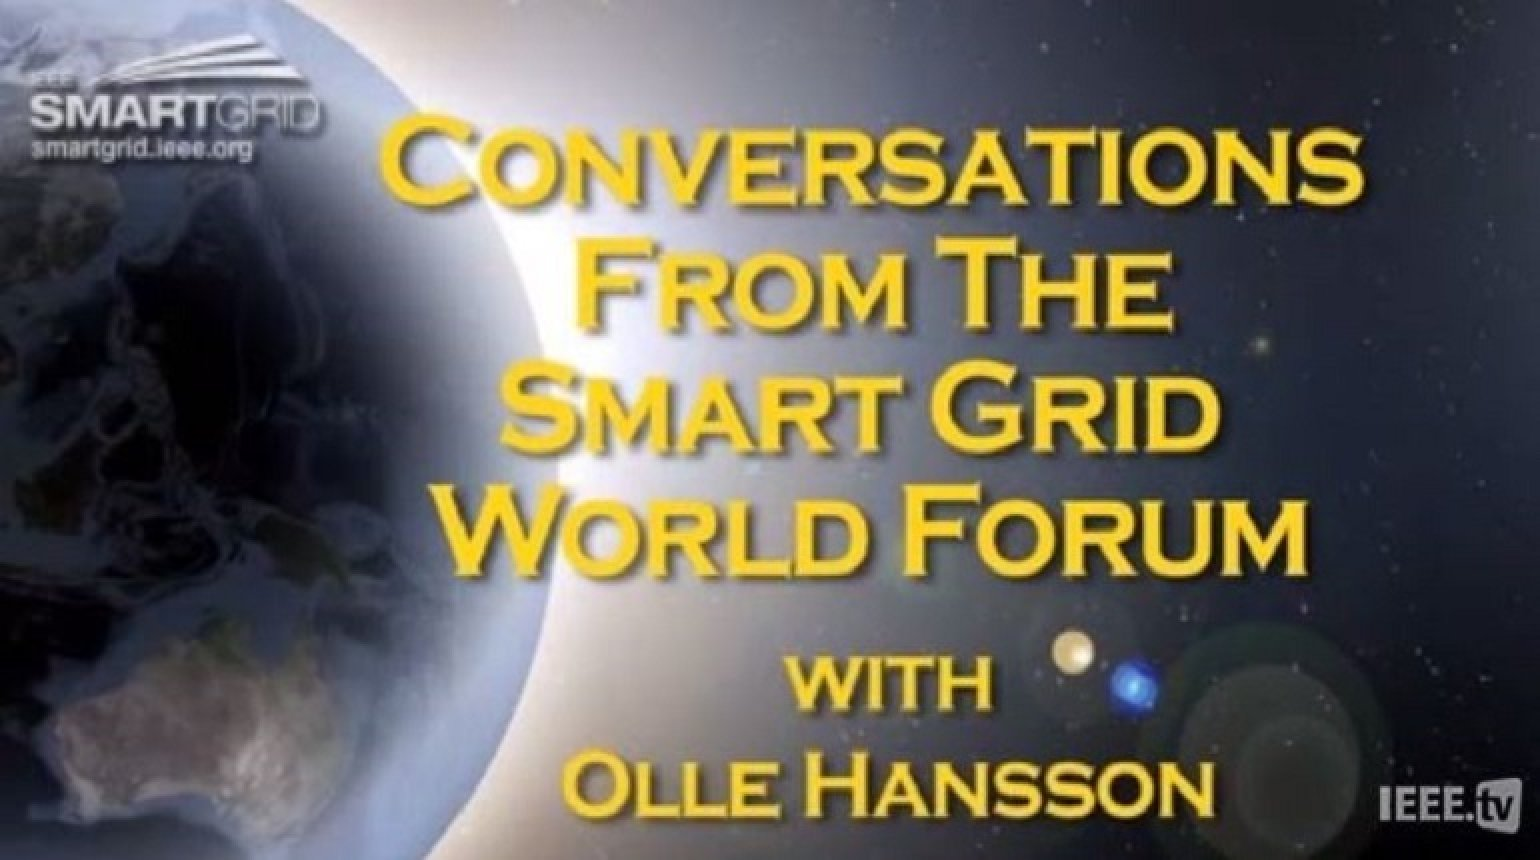 Sustainable Energy and Smart Grid: Olle Hansson